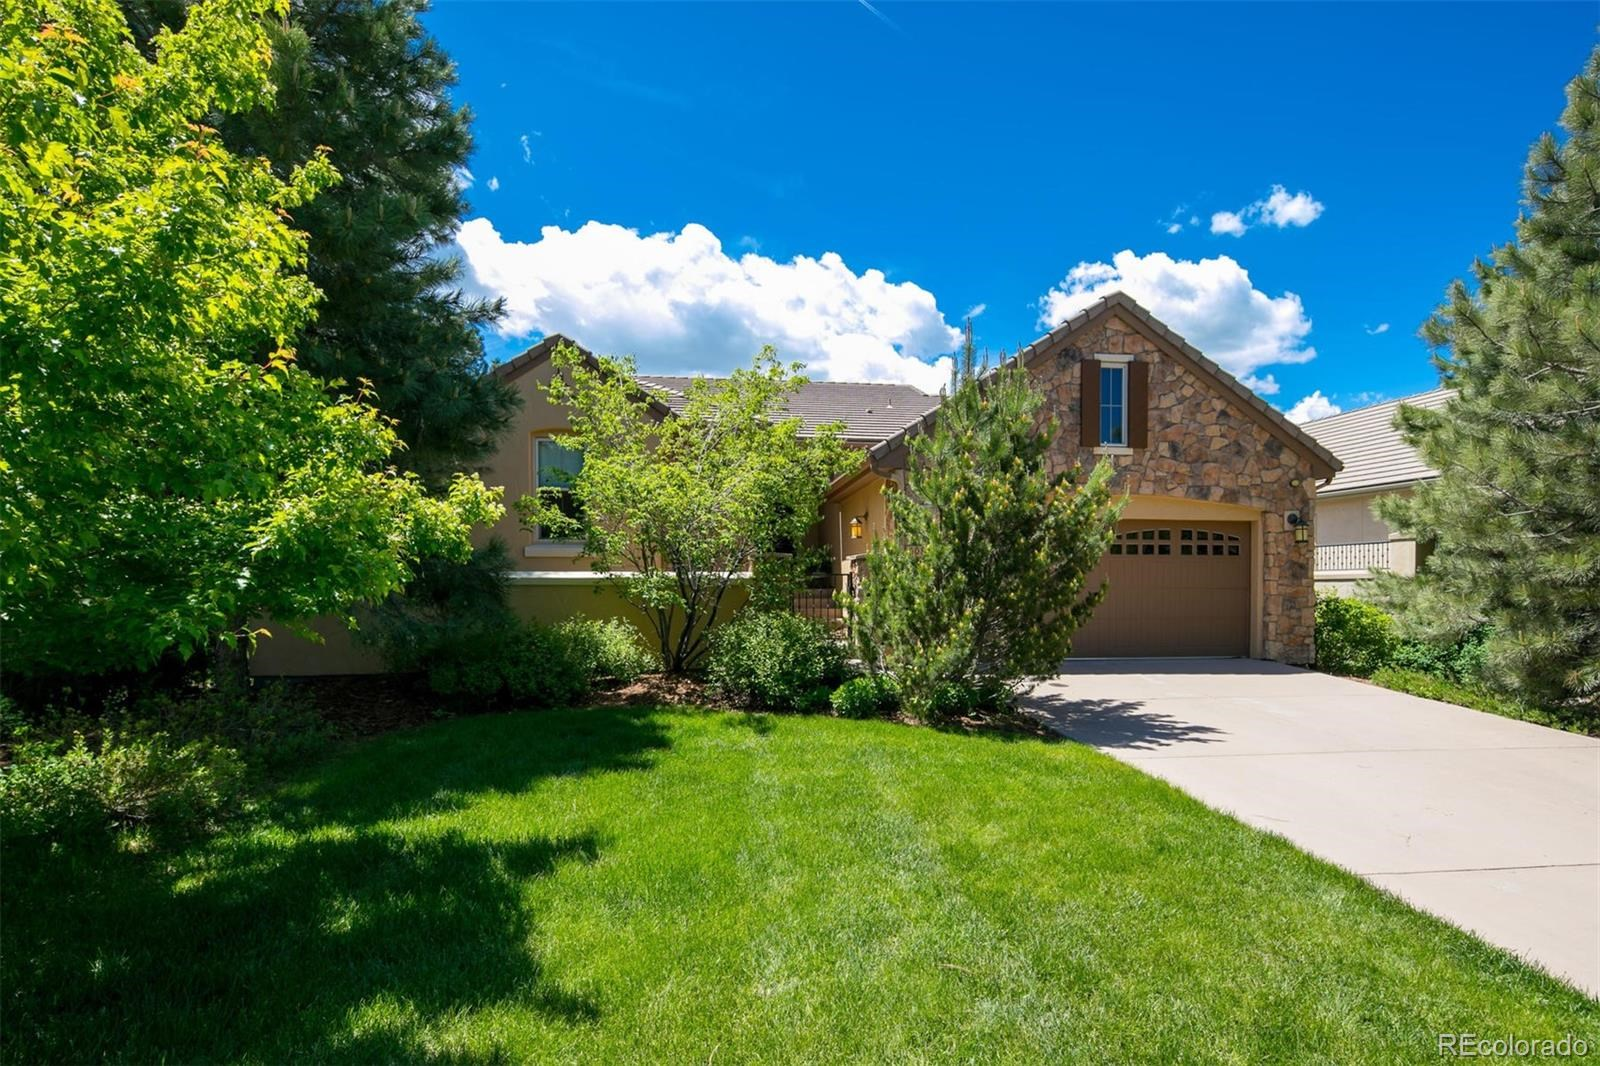 MLS# 5435747 - 5 - 5085 Hidden Pond Place, Castle Rock, CO 80108